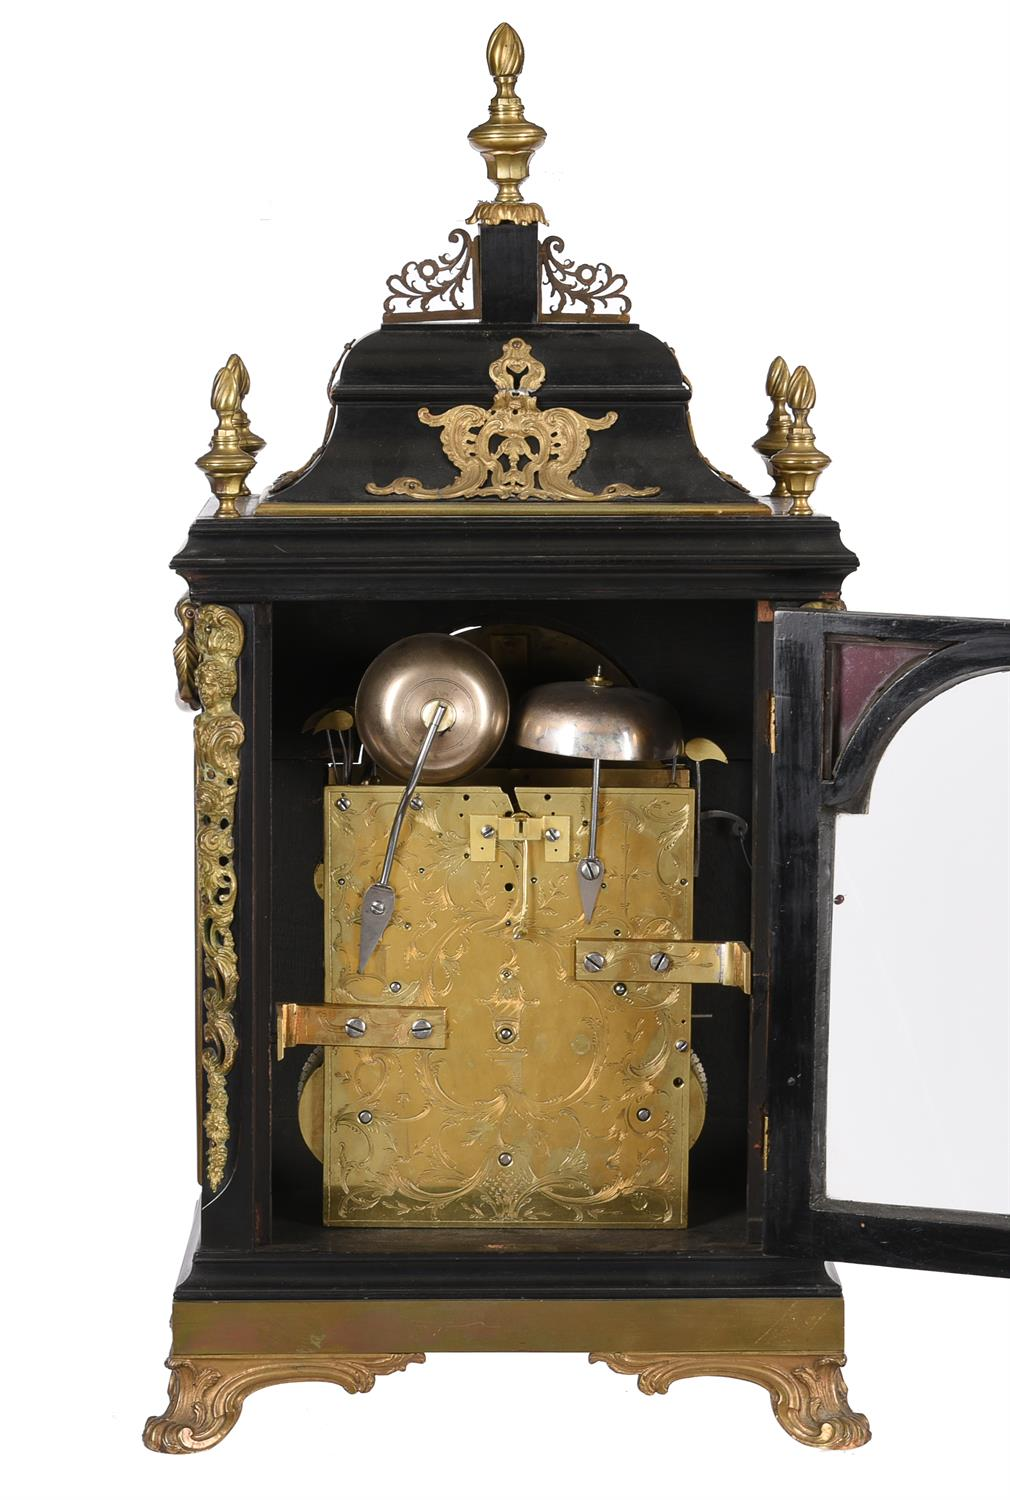 A fine George III ormolu mounted ebonised quarter-chiming table clock with pull-trip repeat - Image 2 of 2